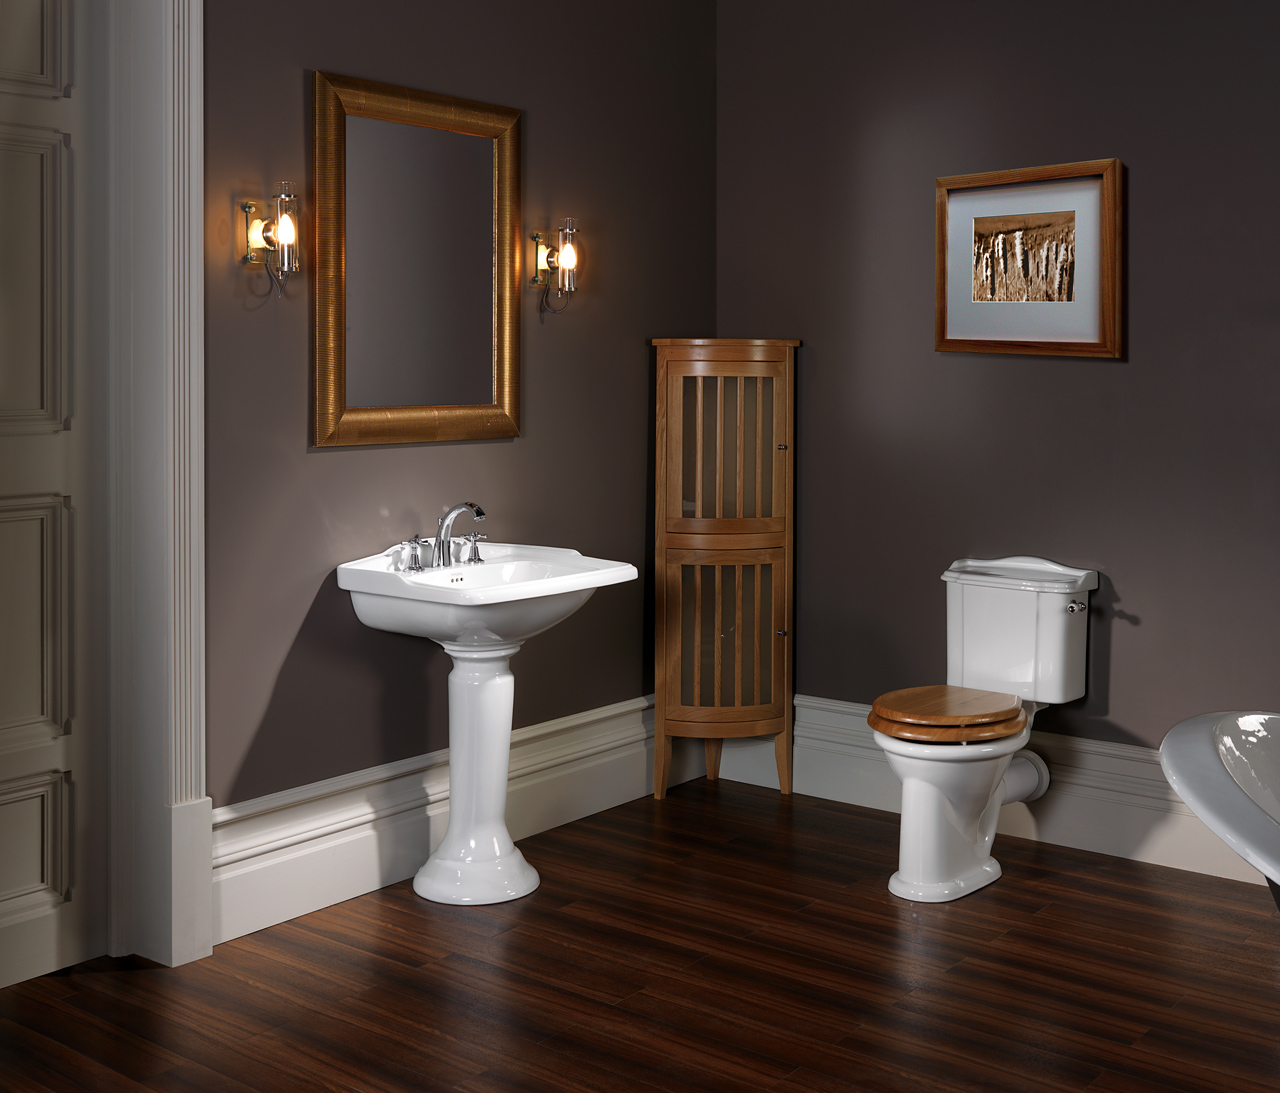 Classic Bathrooms: Imperial Bathrooms - Delille-Main-Set_retouch